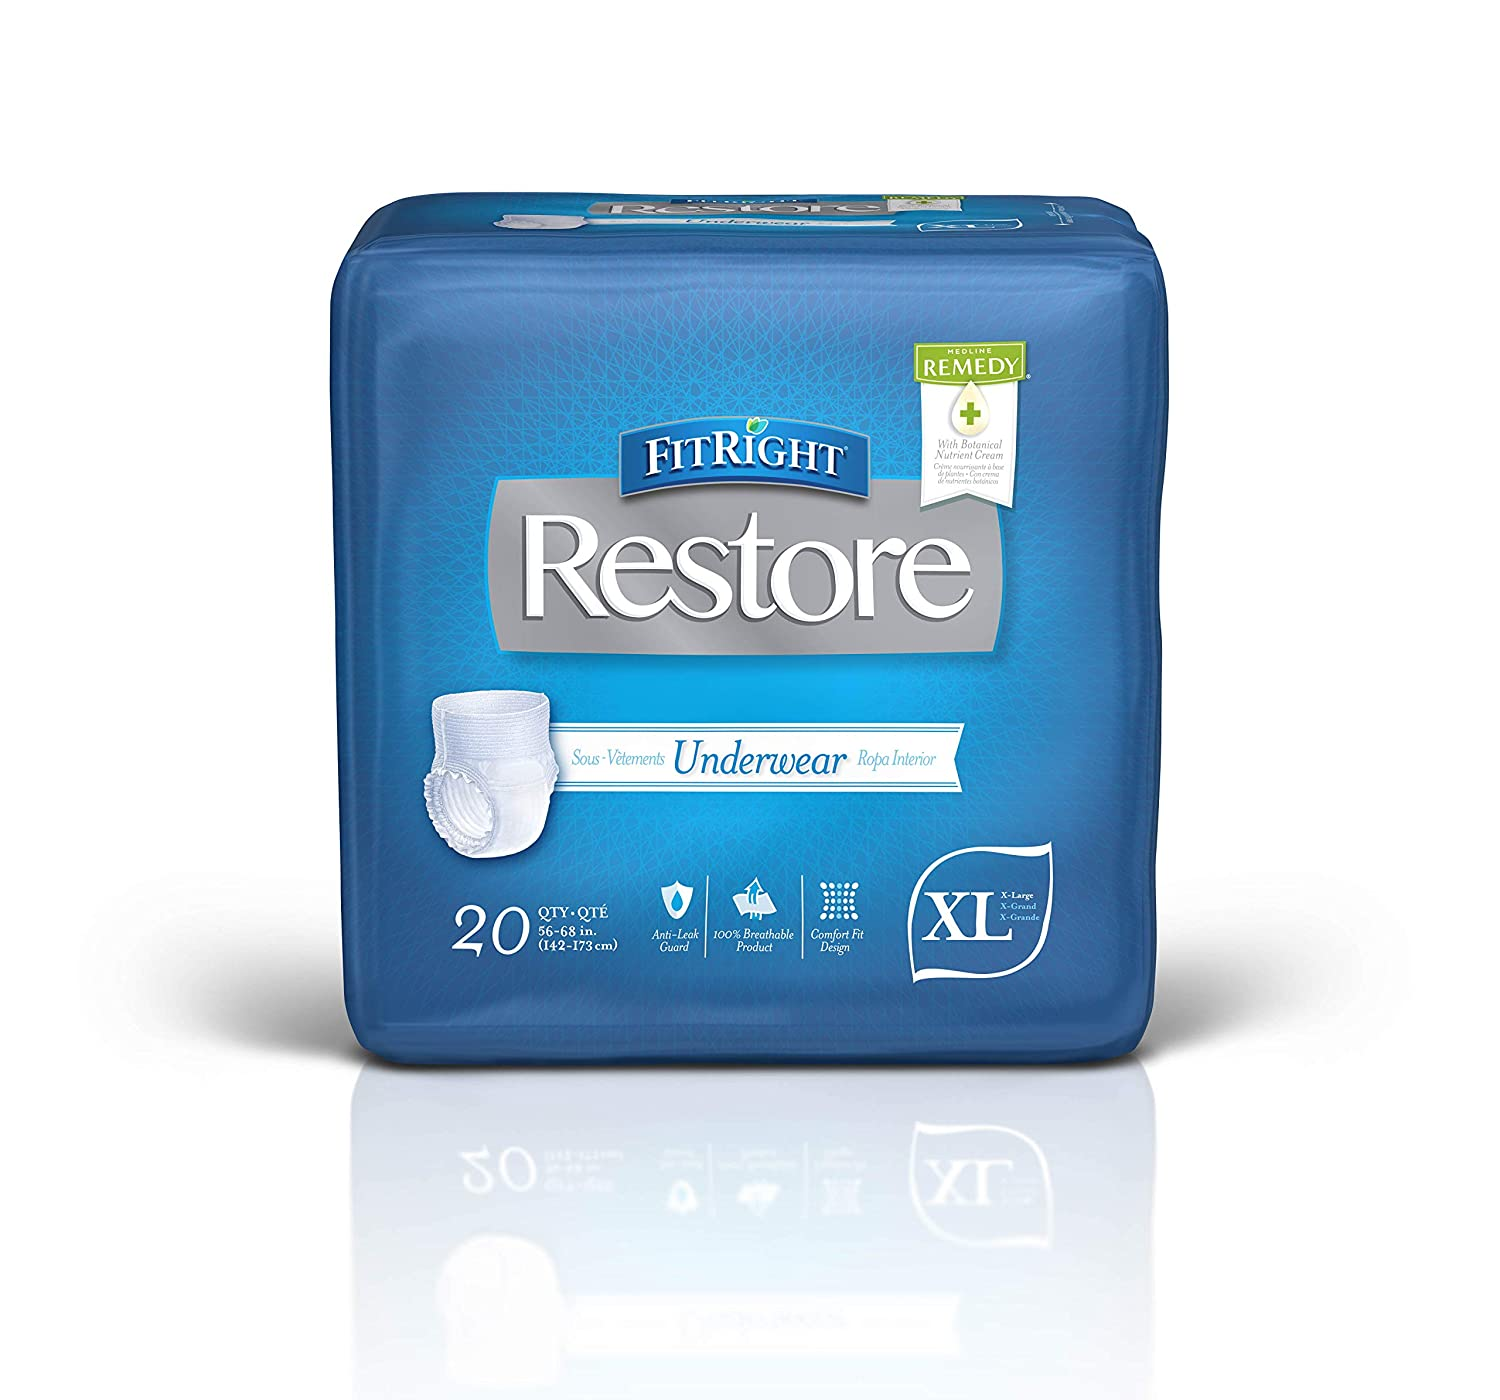 Amazon.com: FitRight Restore Adult Protective Underwear, Ultra Absorbency, SM-MD, 28